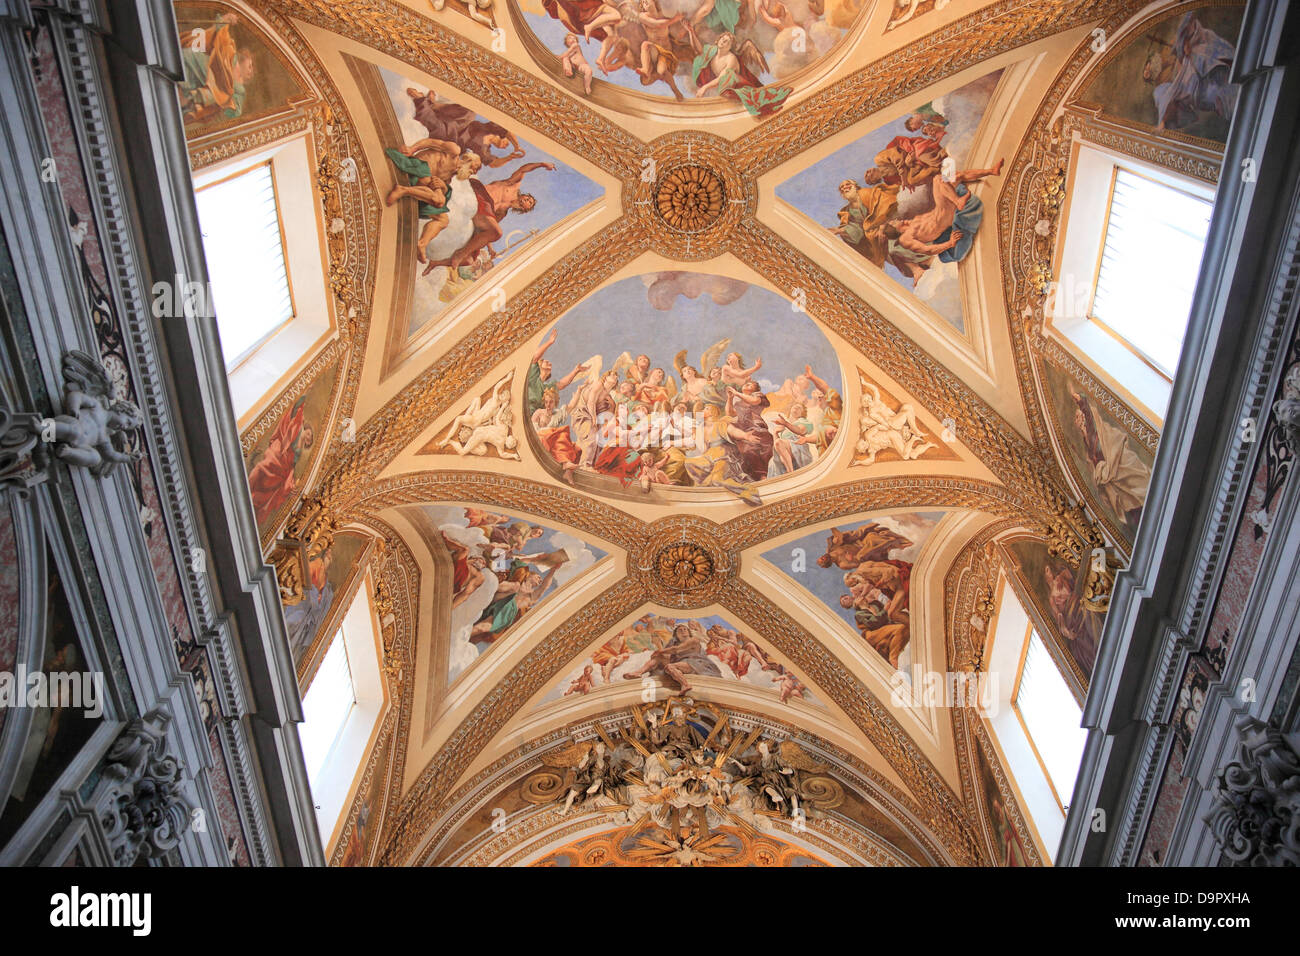 Ceiling of the church in the Certosa di San Martino on the above Vomero Naples, Campania, Italy - Stock Image